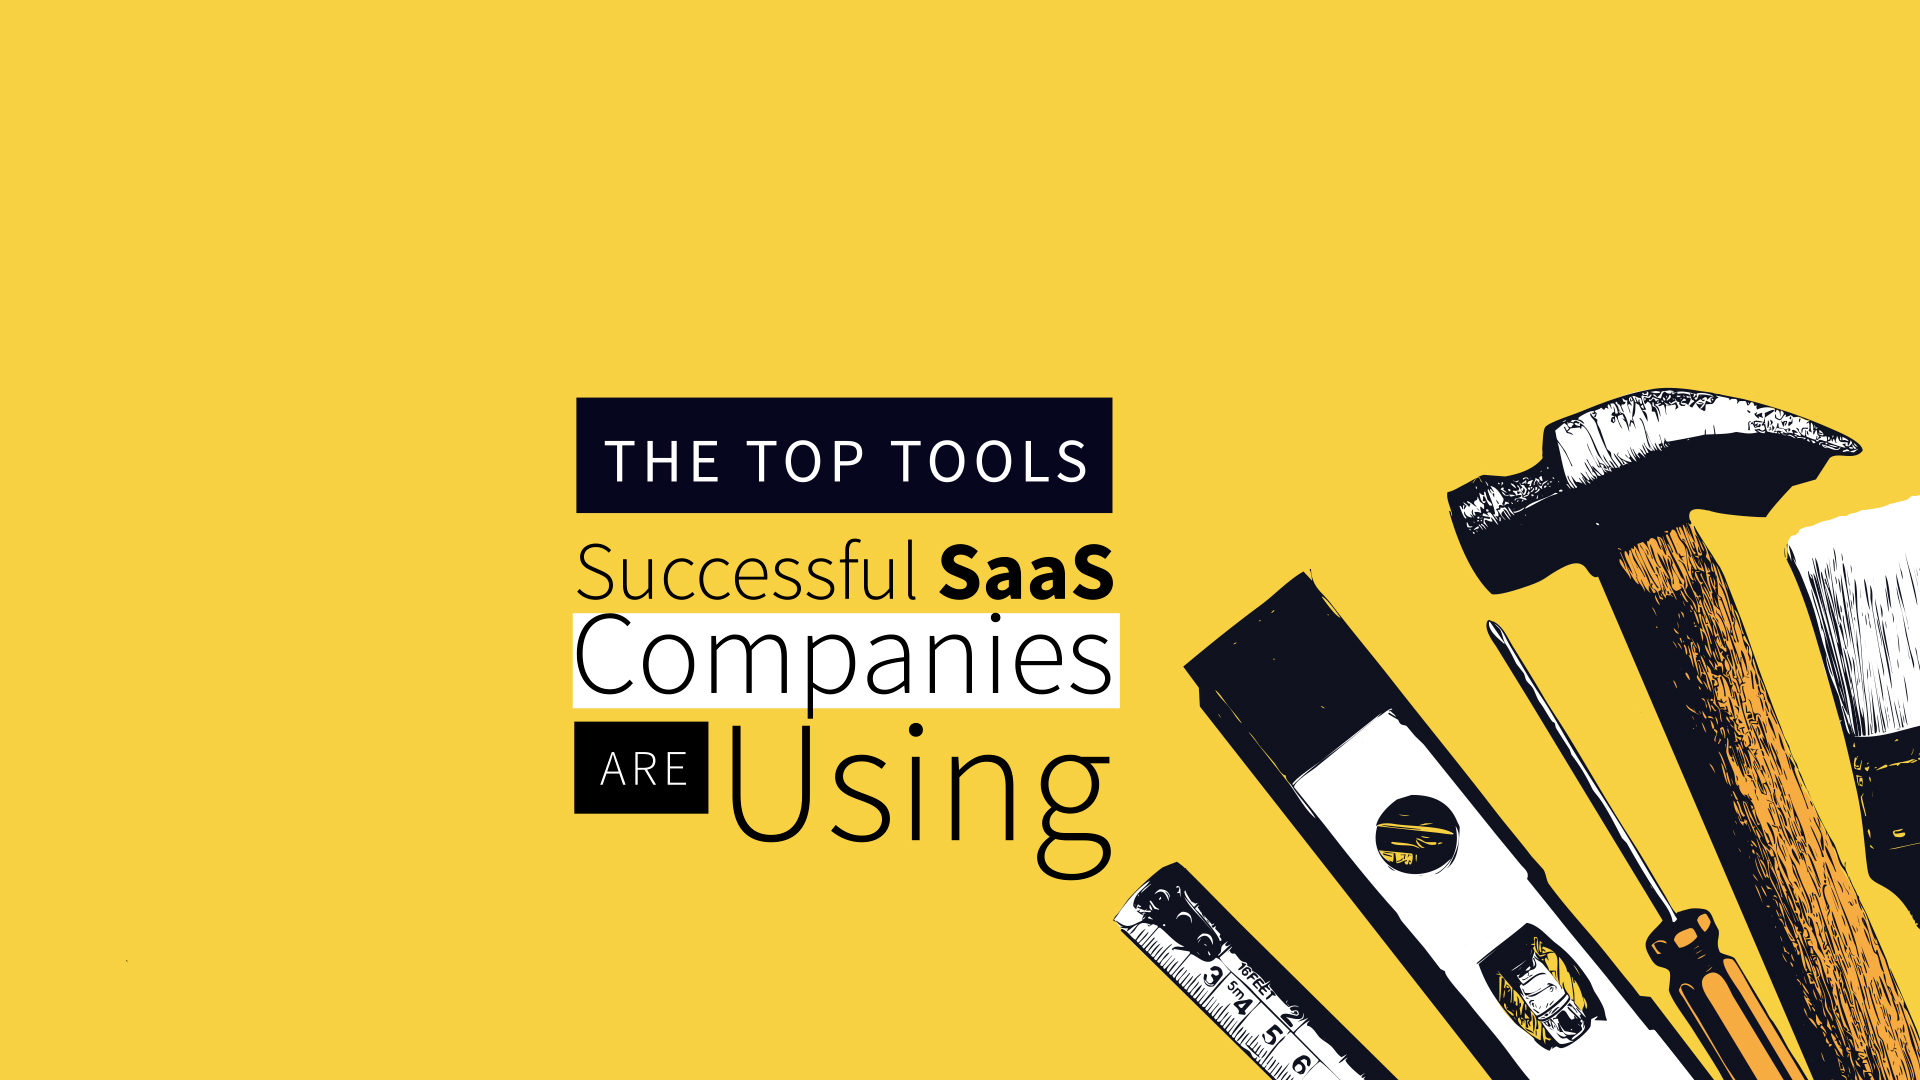 The Top Tools SaaS Companies Are Using in 2018